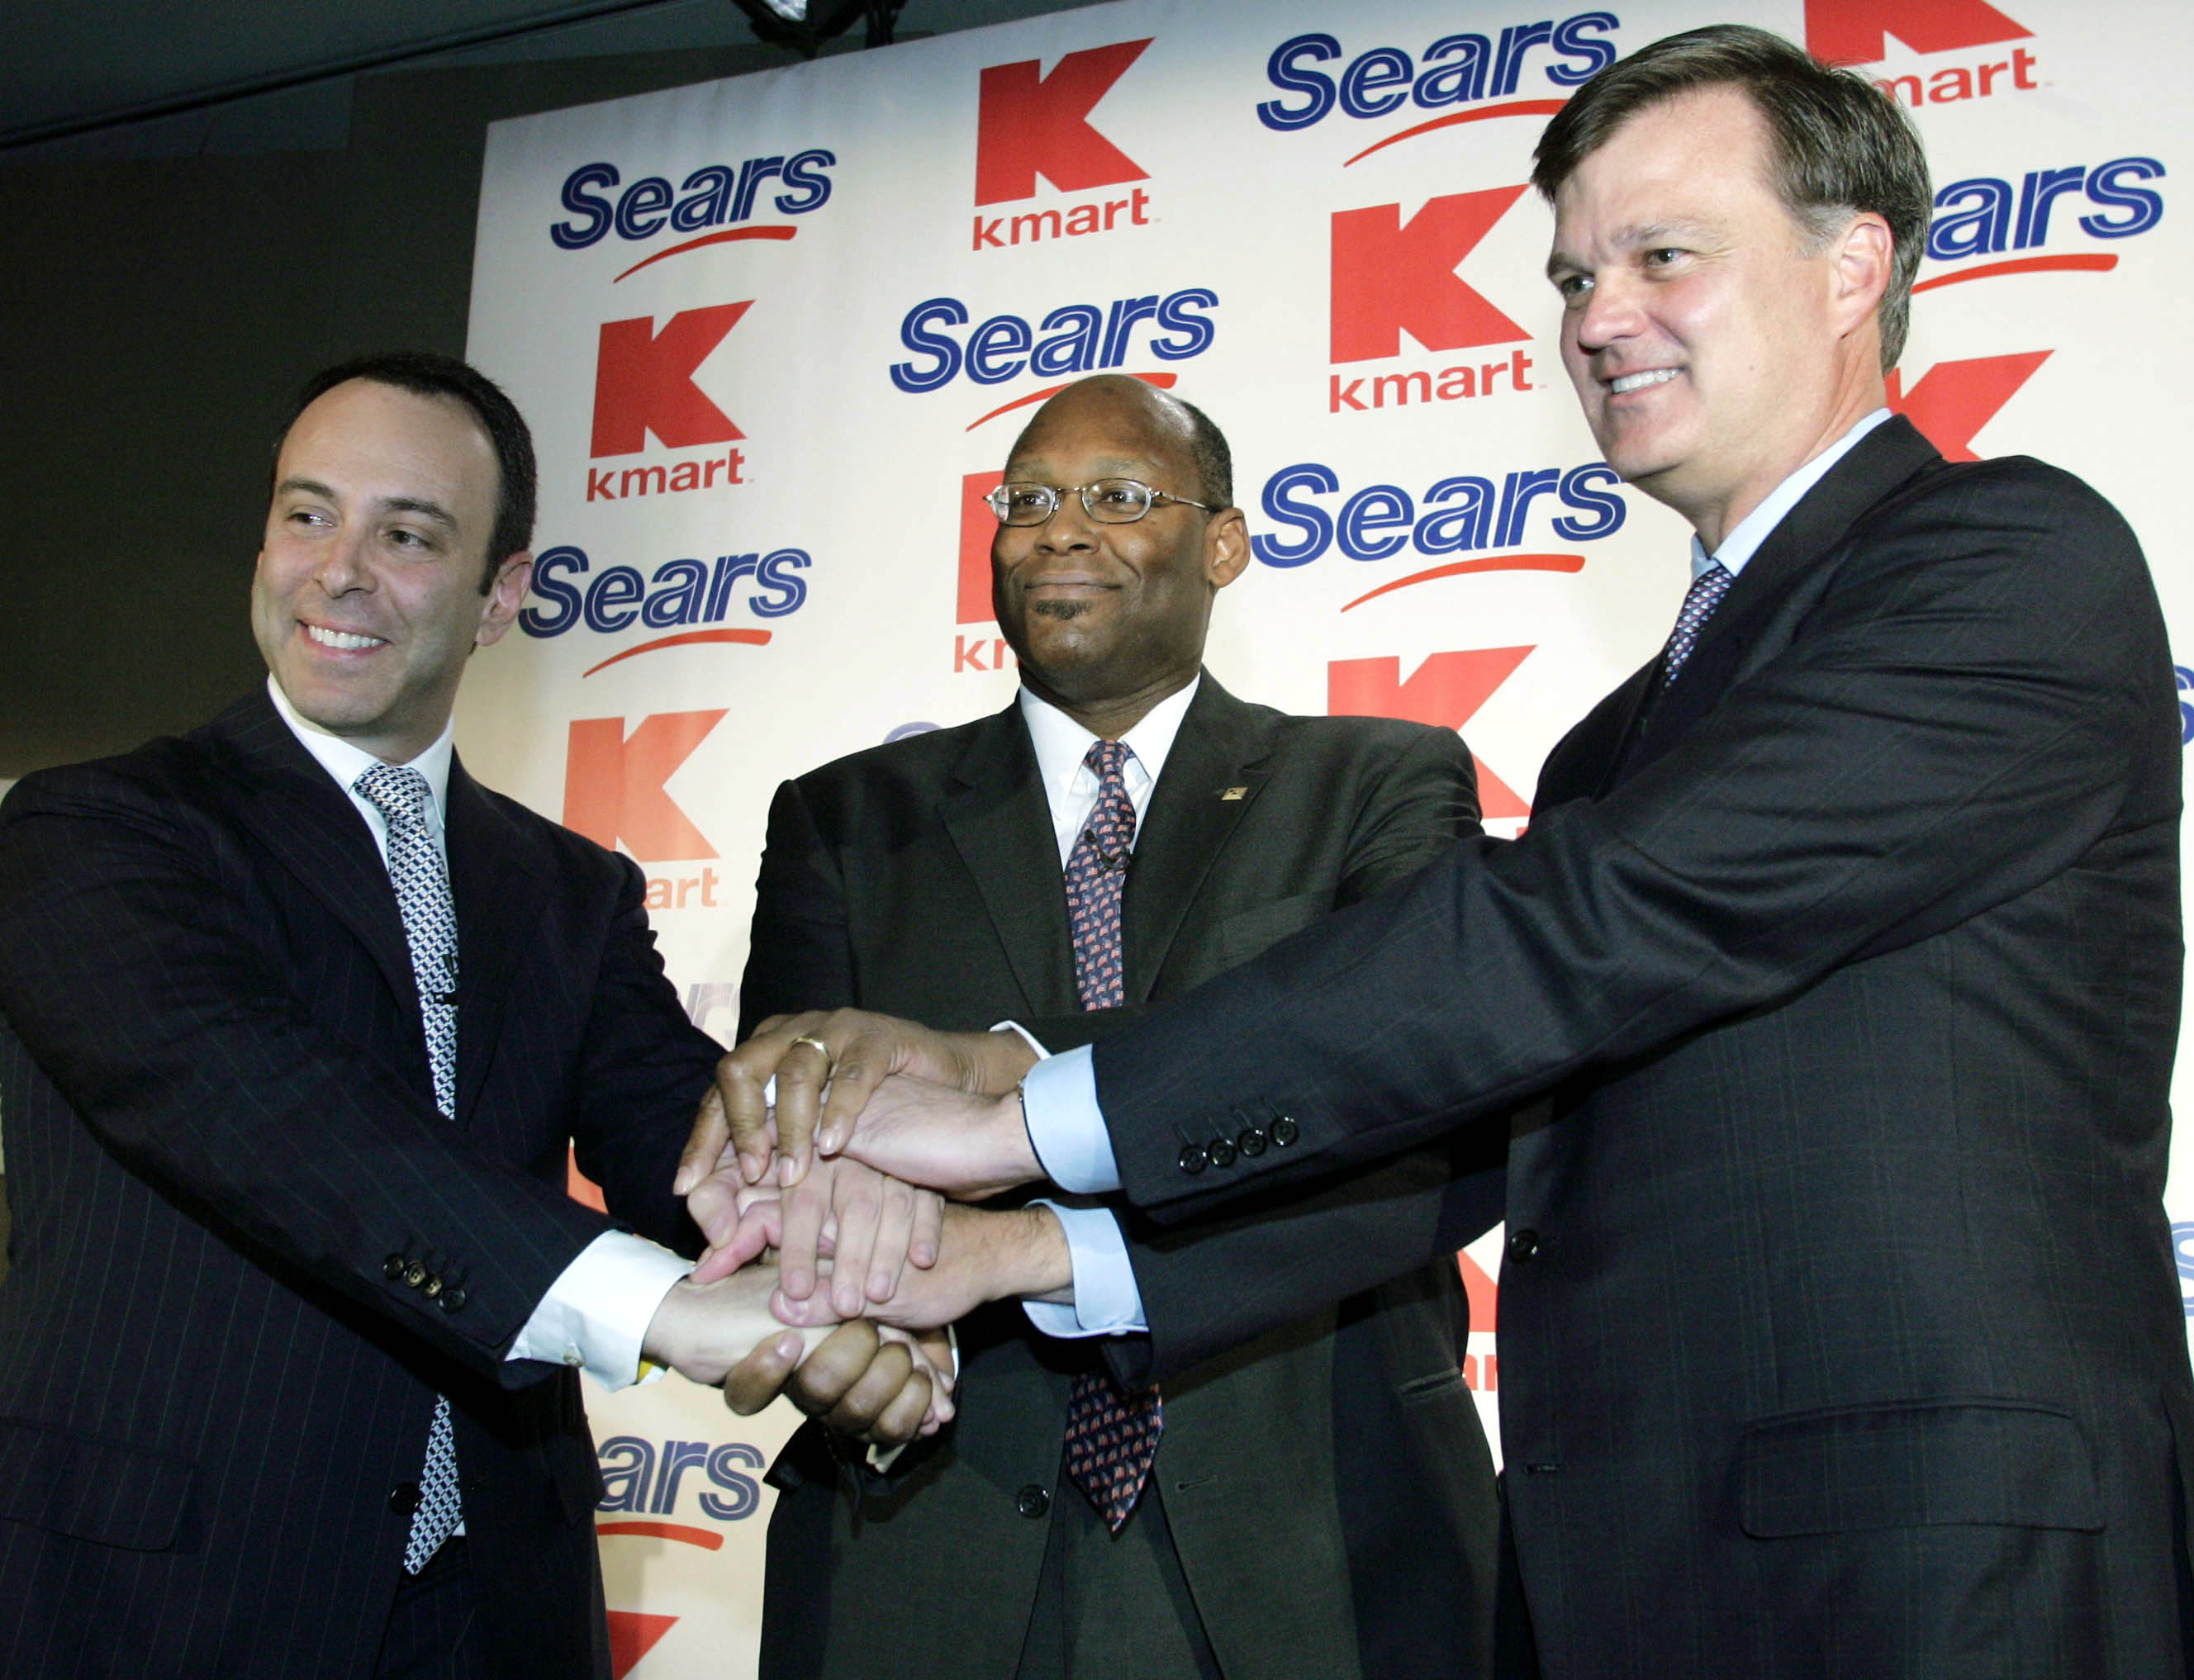 Sears: A Timeline From Its Founding to Its Bankruptcy | Fortune